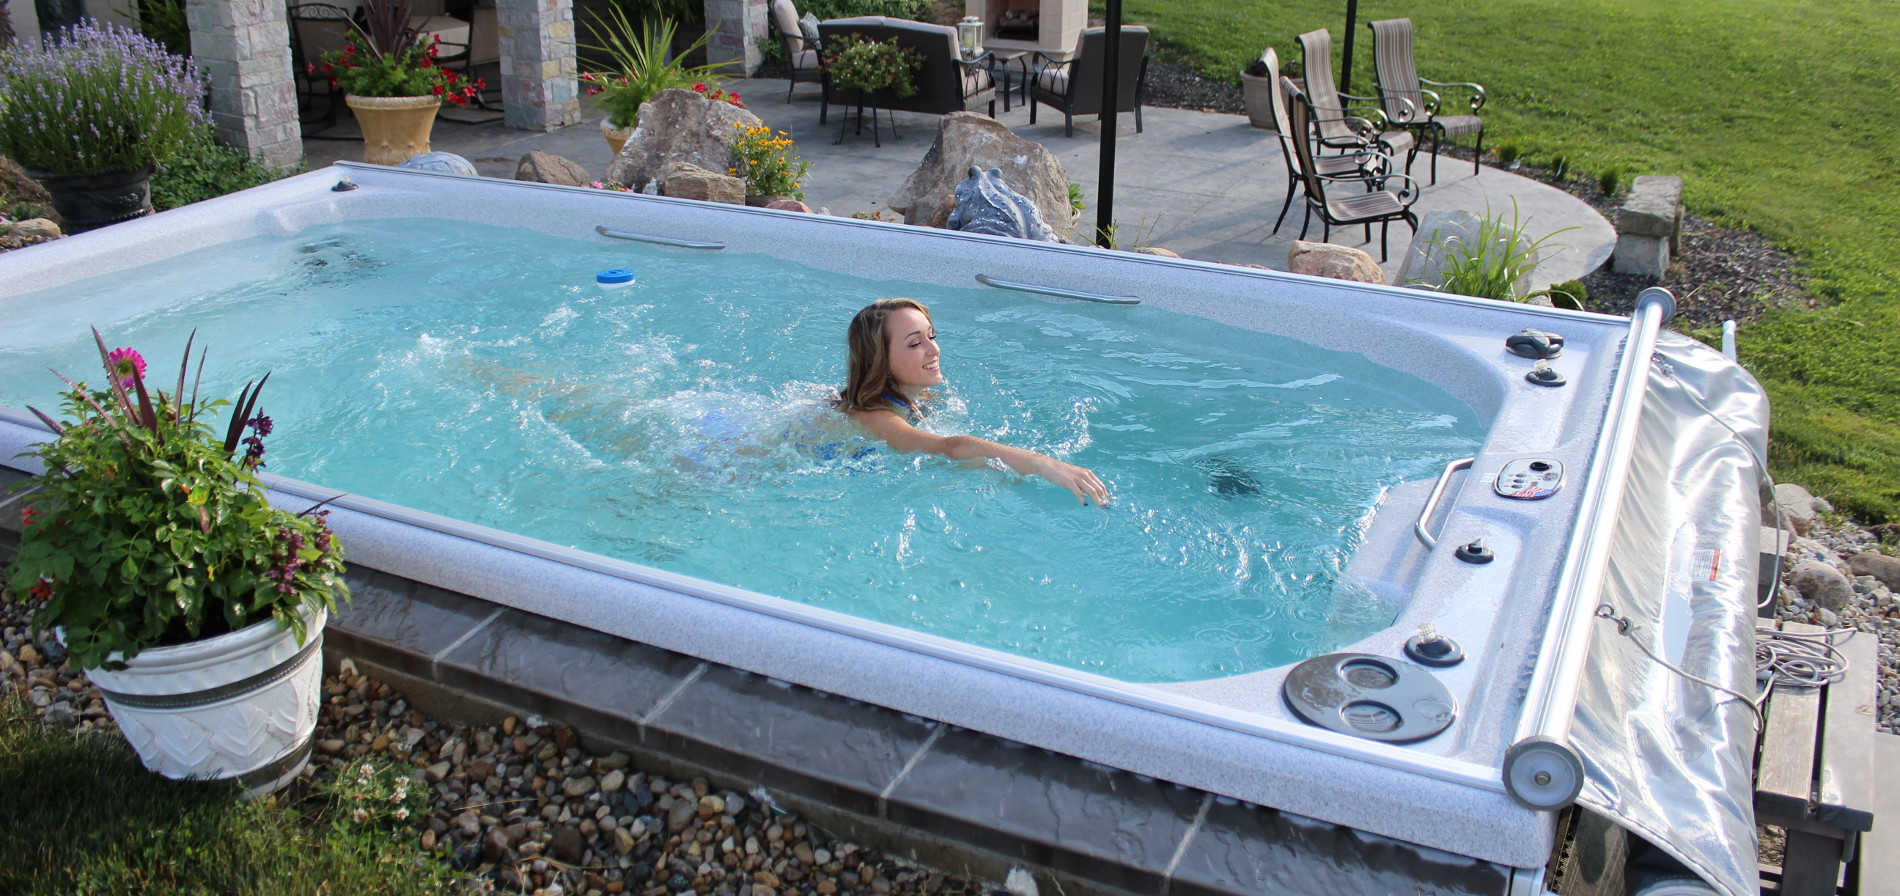 Dimension spa de nage maison design for Piscine hors sol avec nage contre courant